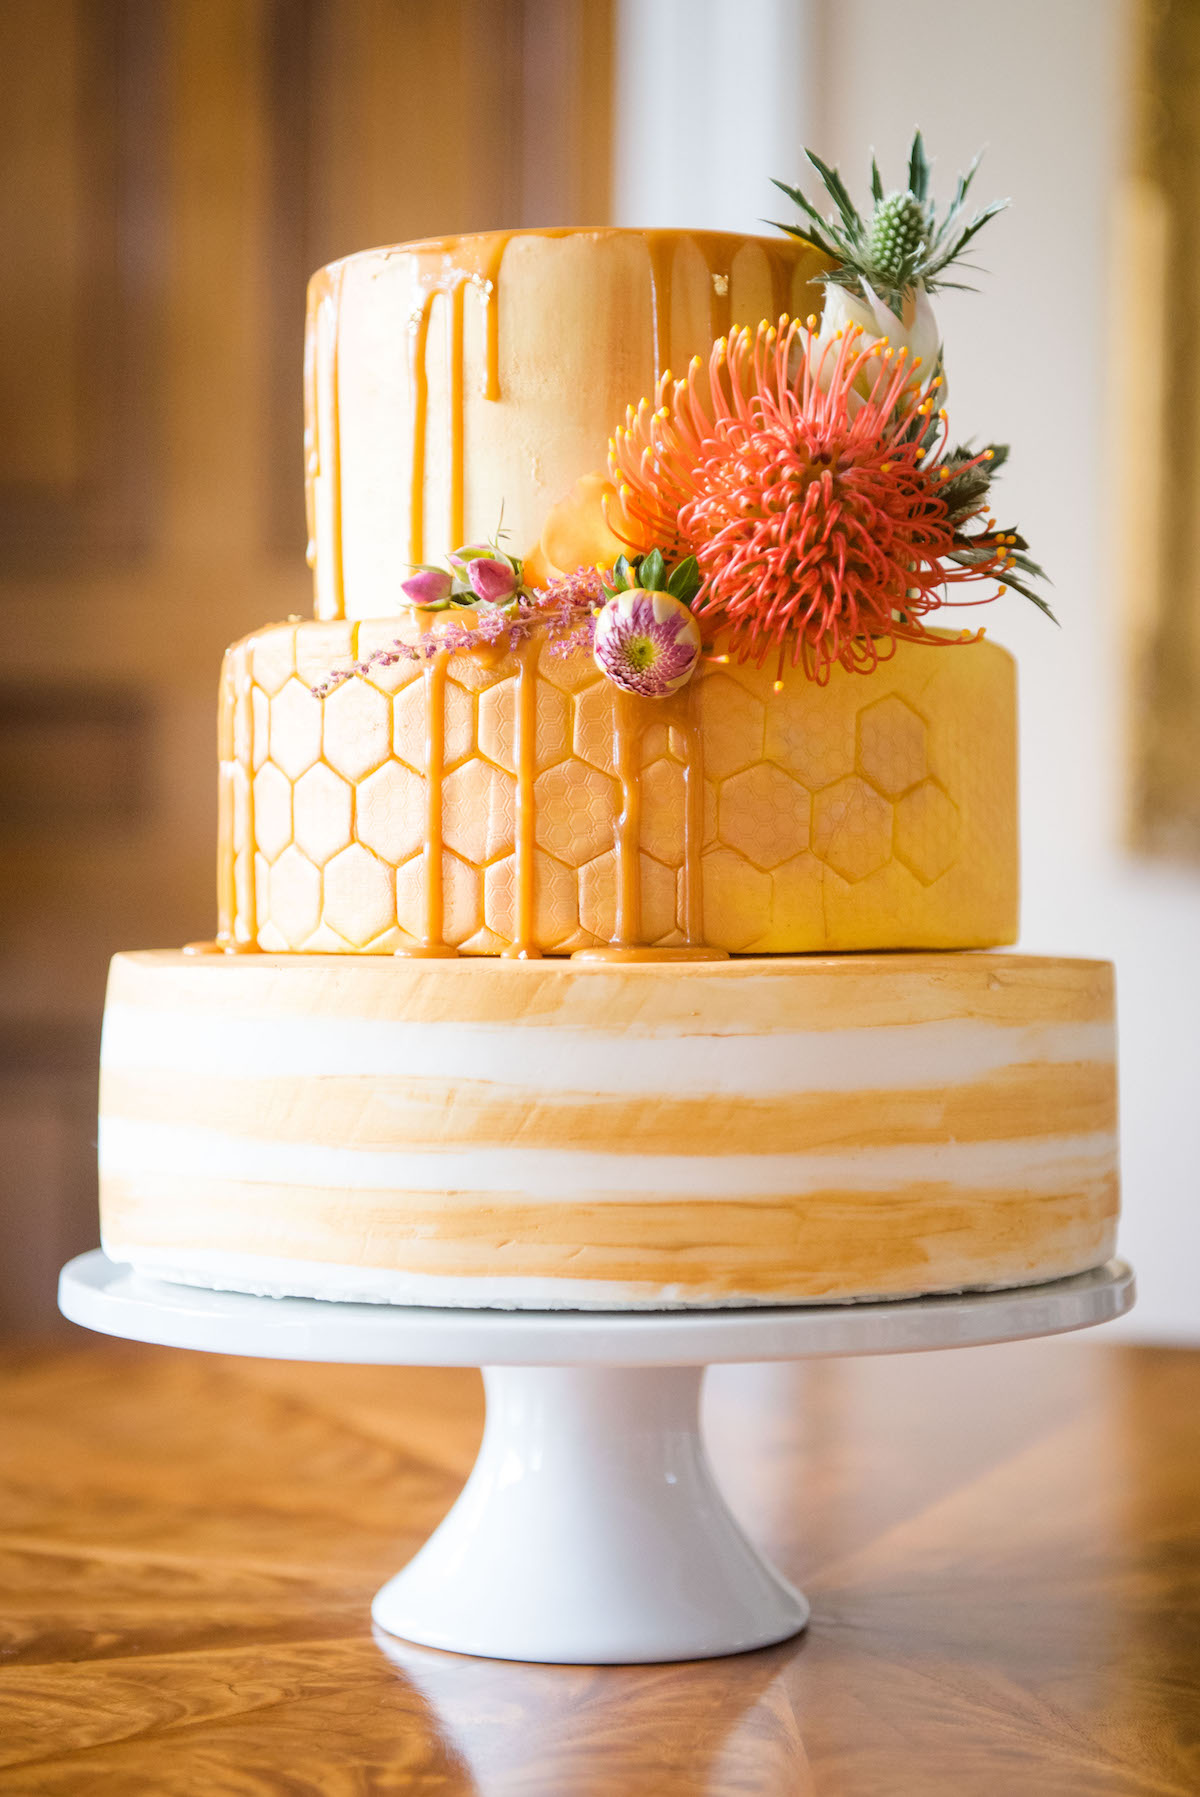 GOLD AND ORANGE WEDDING CAKE NORFOLK